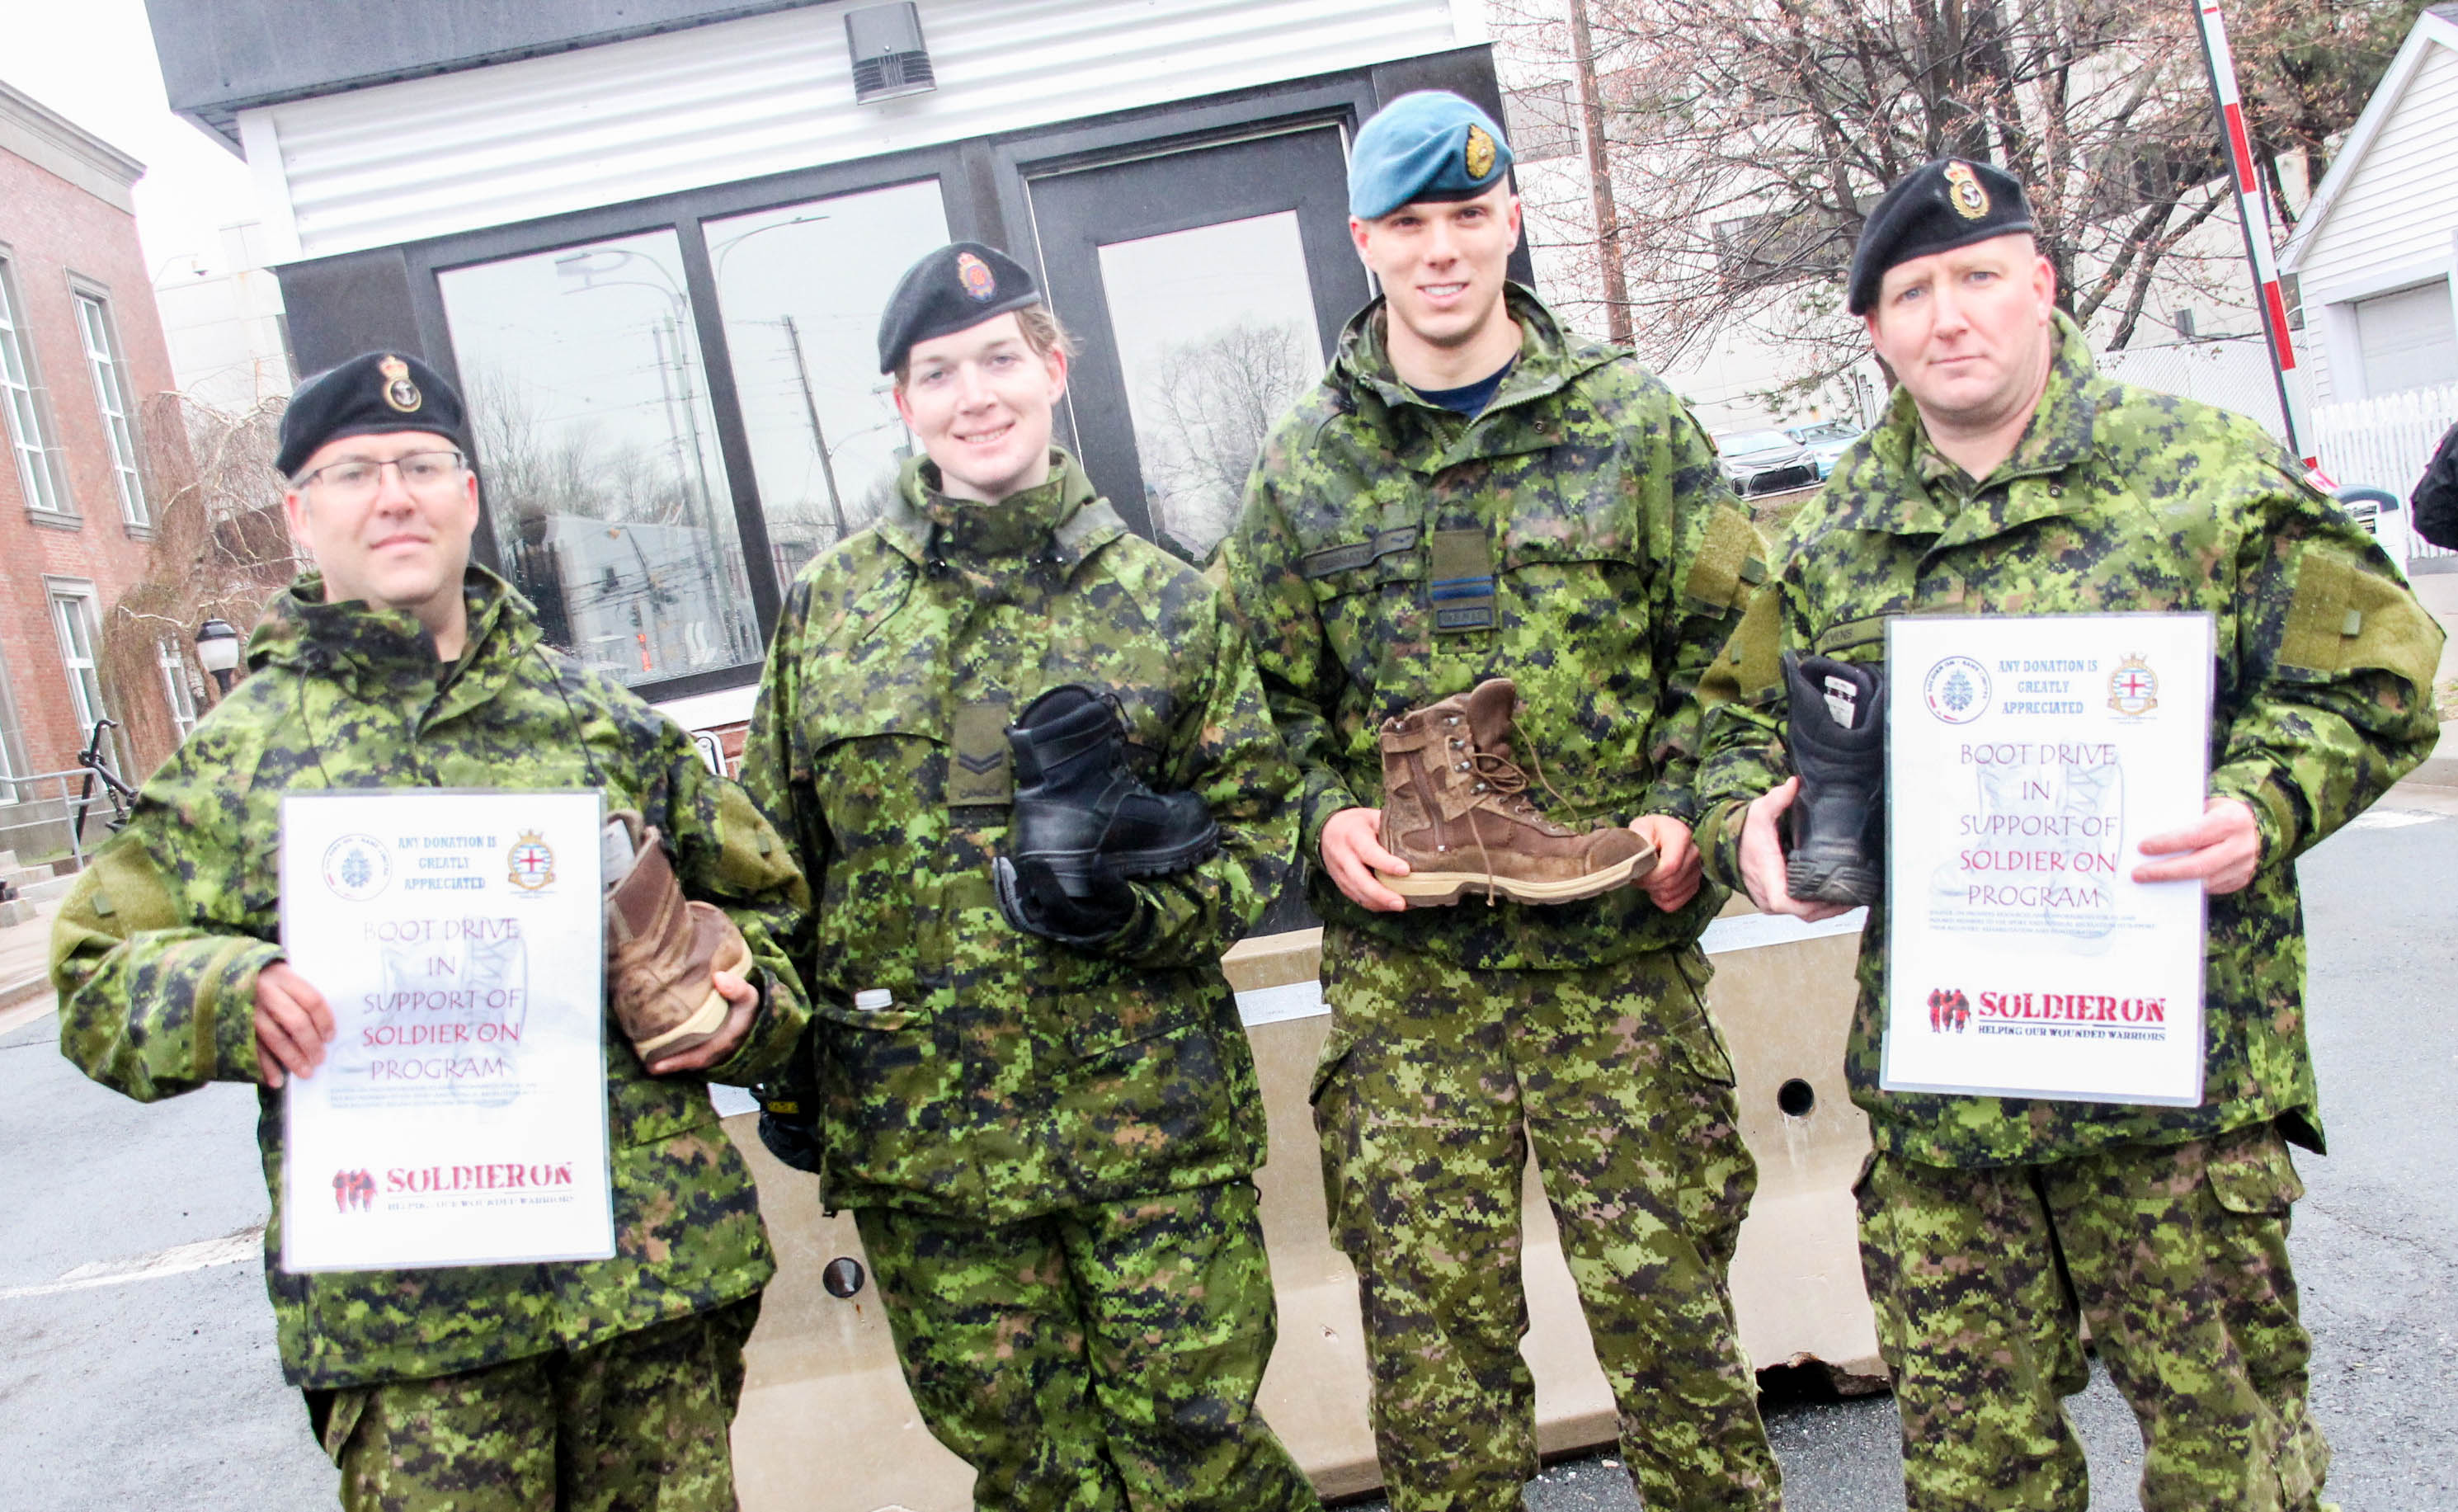 Nijmegen boot drive supports Soldier On